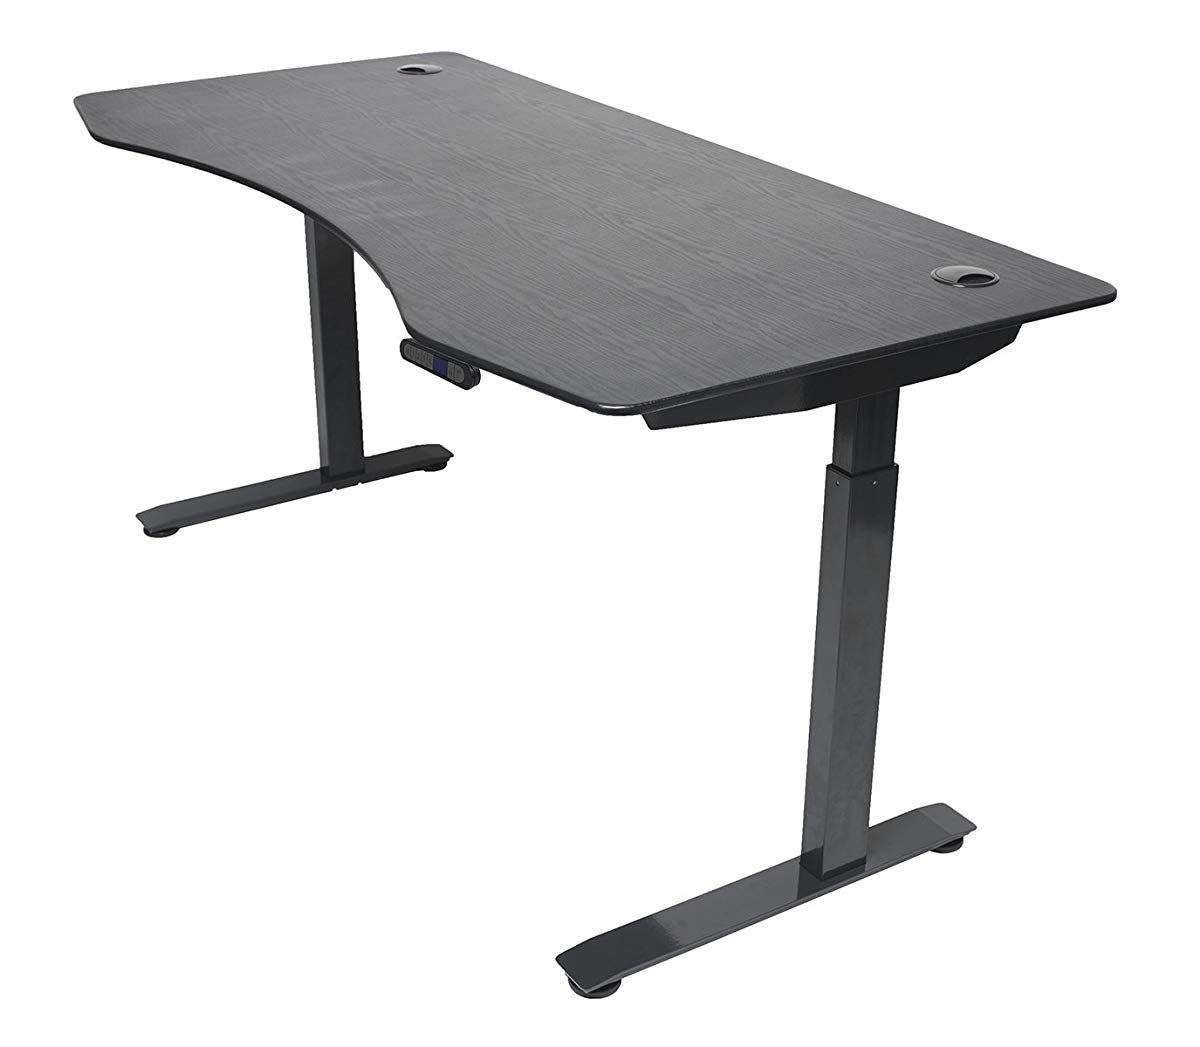 Electric Height Adjustable Standing Desk Adjustable Standing